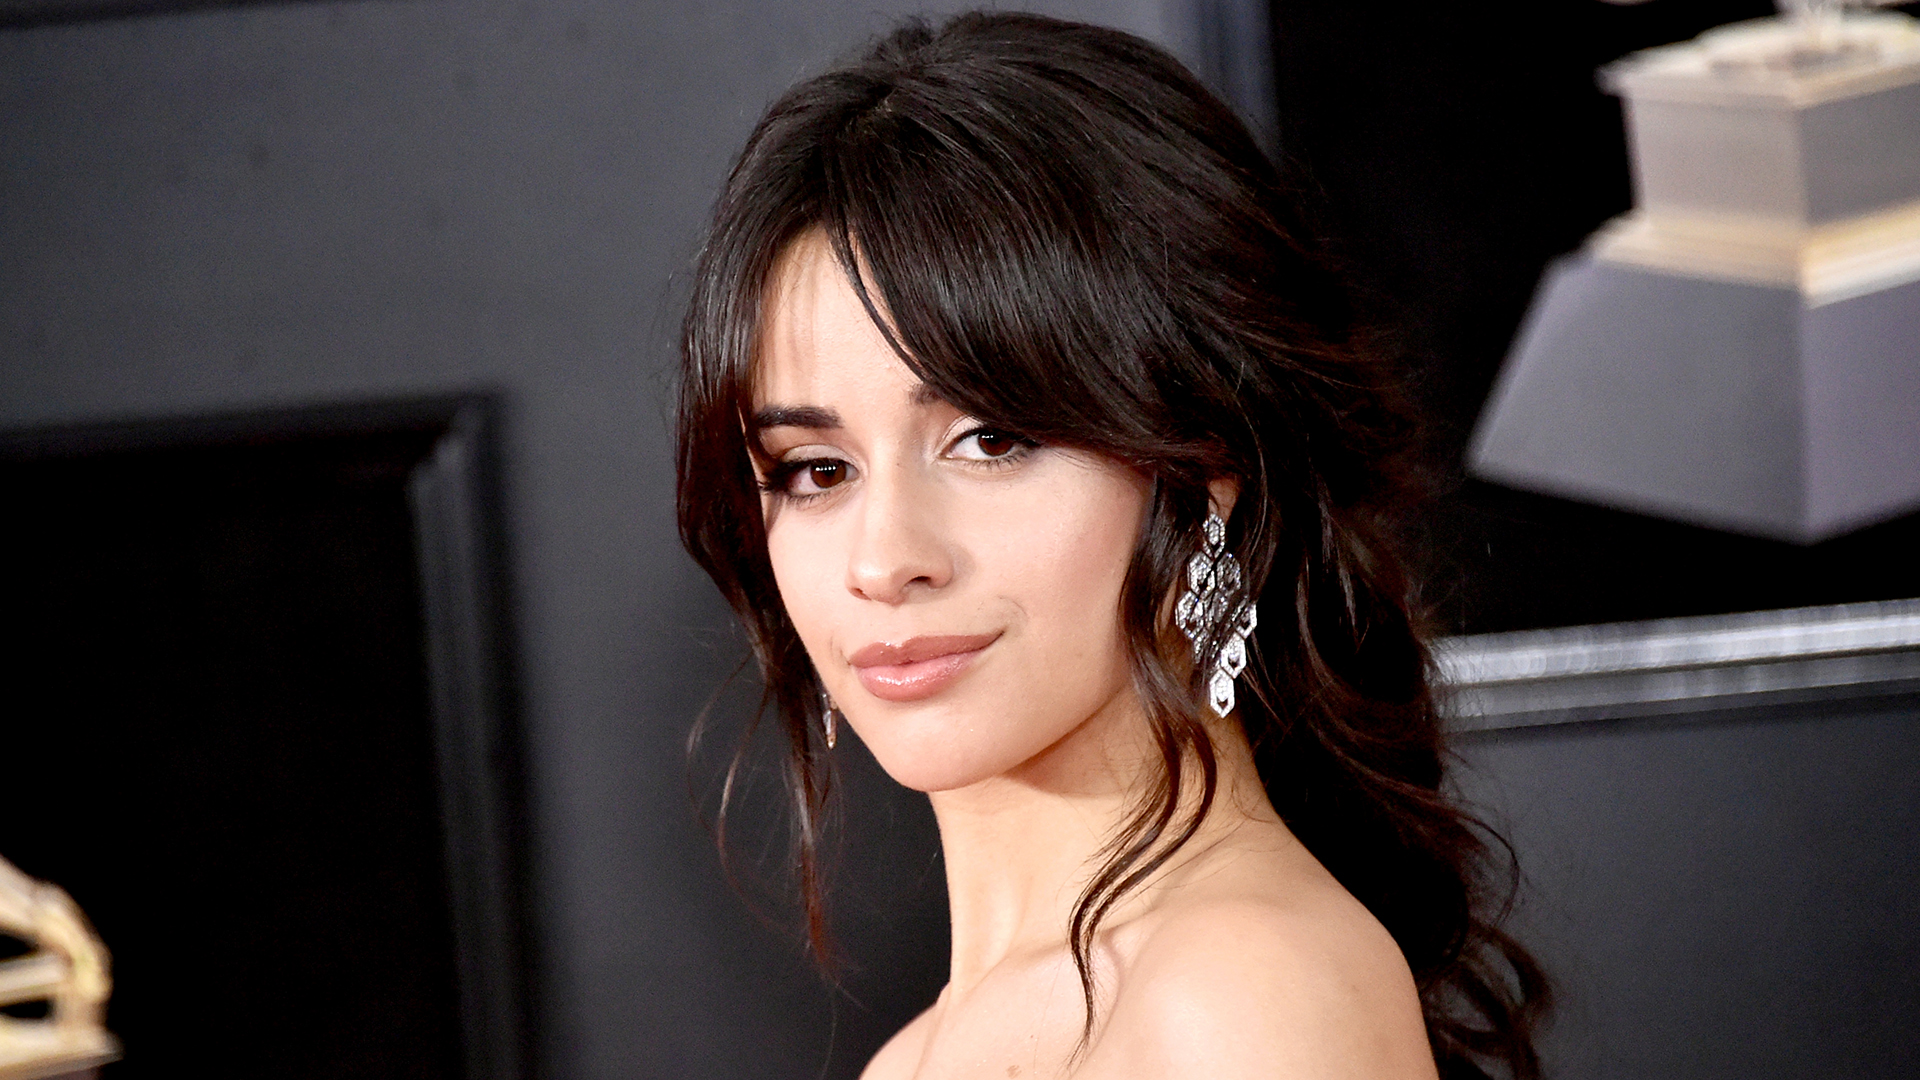 Woah—Camila Cabello Went Platinum Blonde For Her New Music Video